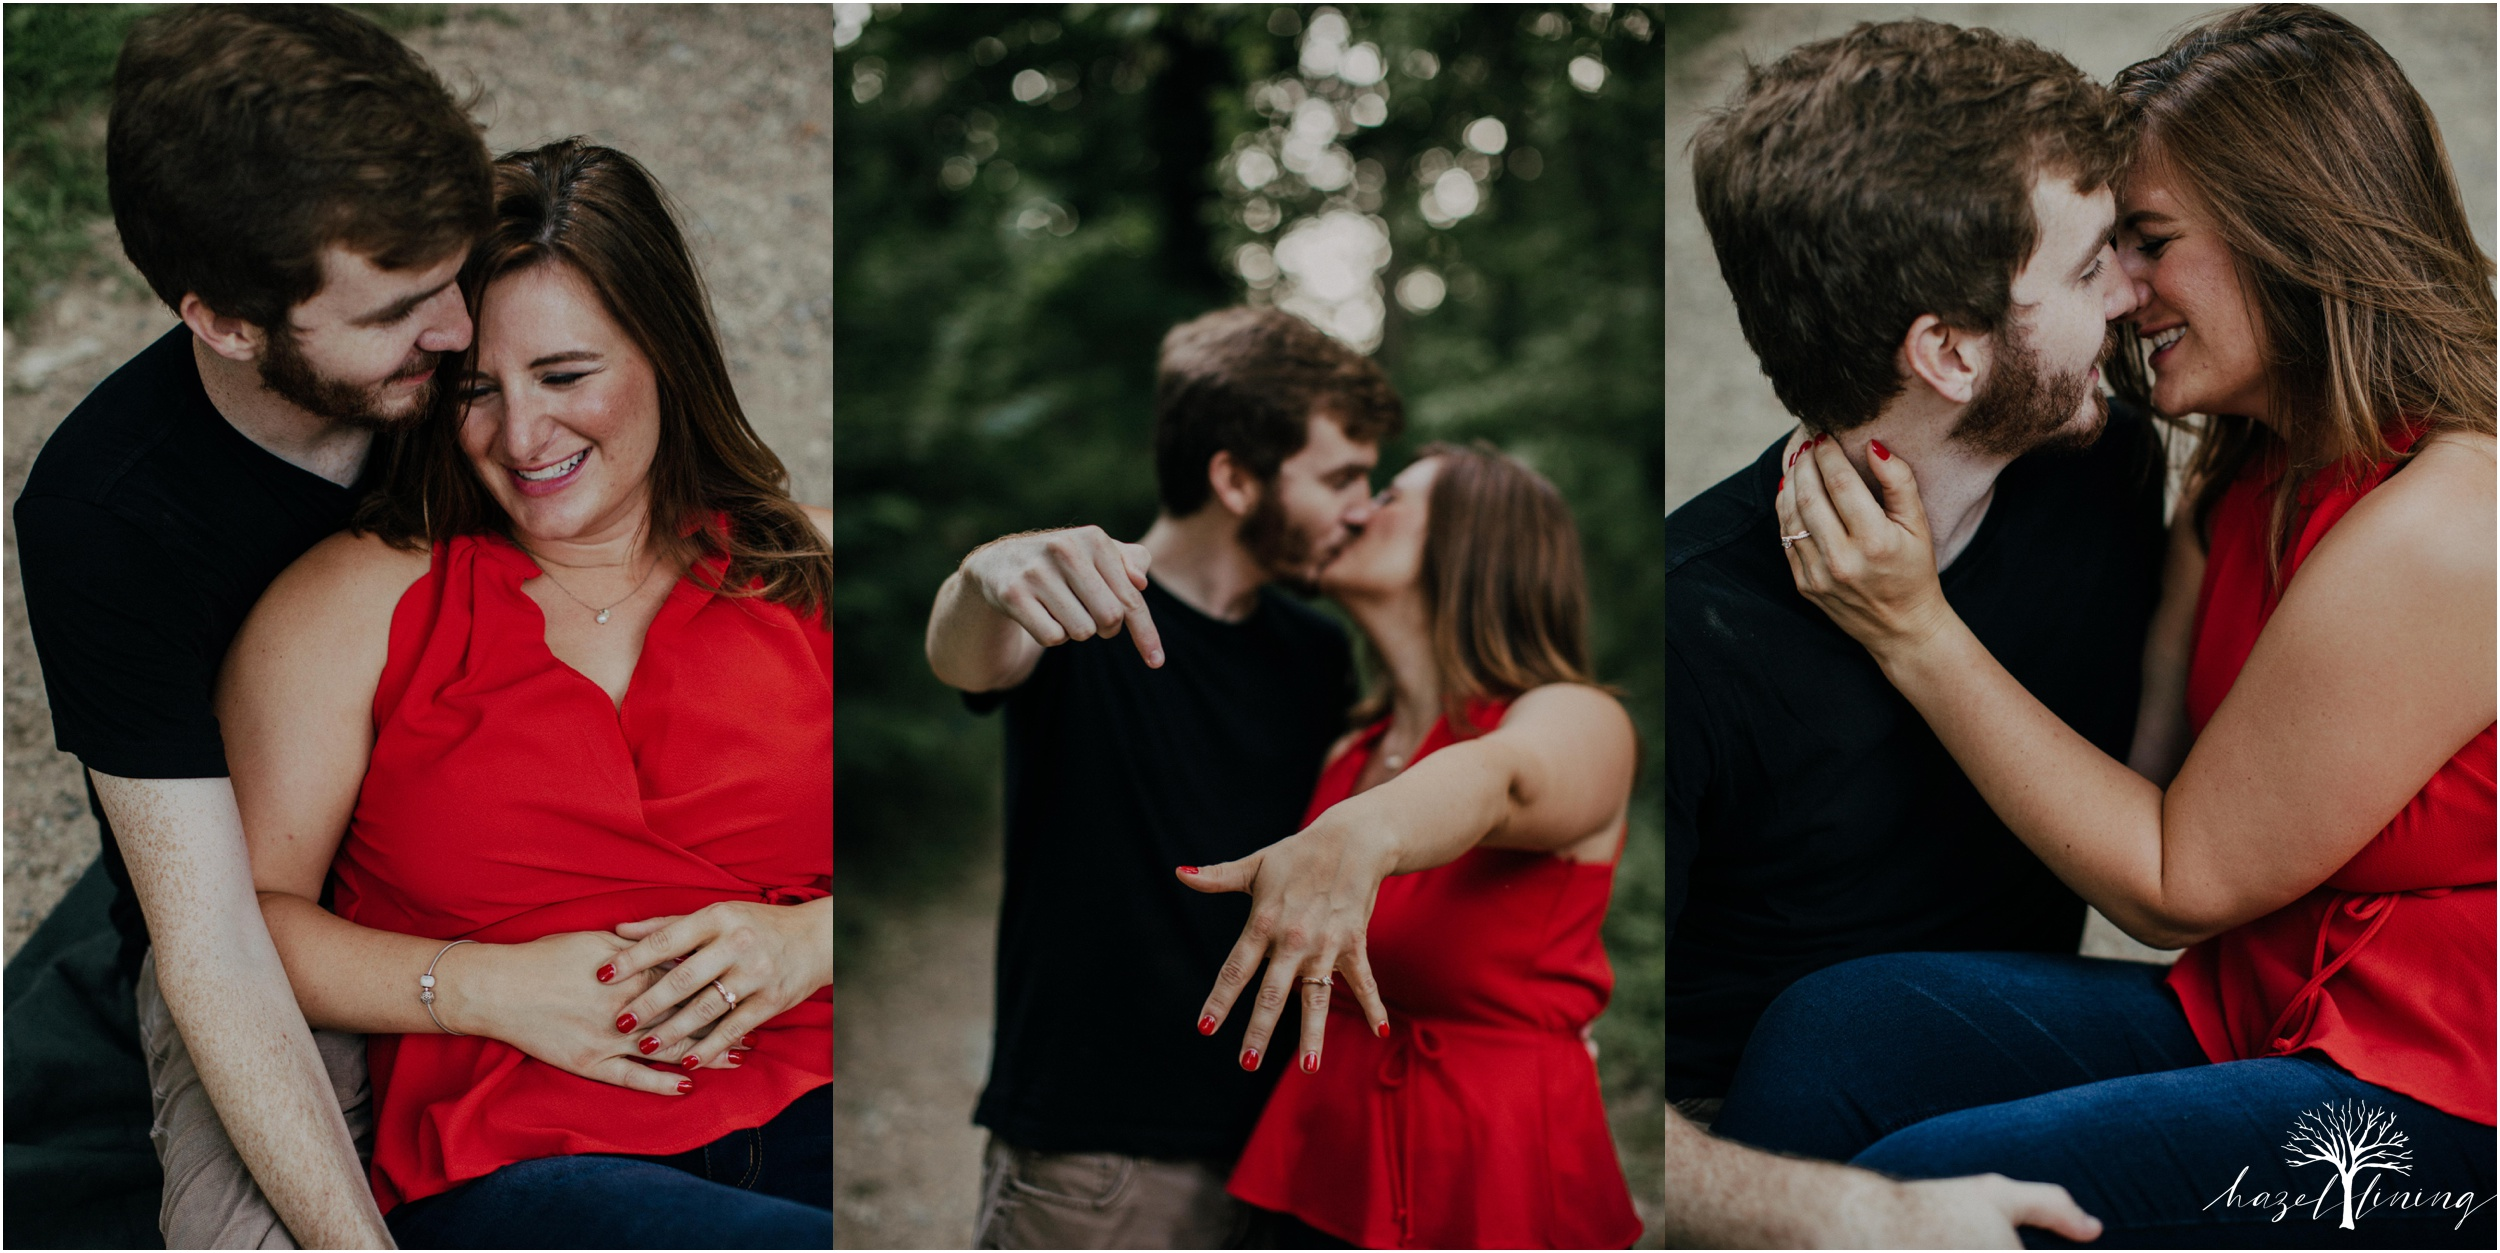 paige-kochey-chris-graham-valley-green-wissahickon-park-philadelphia-summer-engagement-session-hazel-lining-photography-destination-elopement-wedding-engagement-photography_0054.jpg